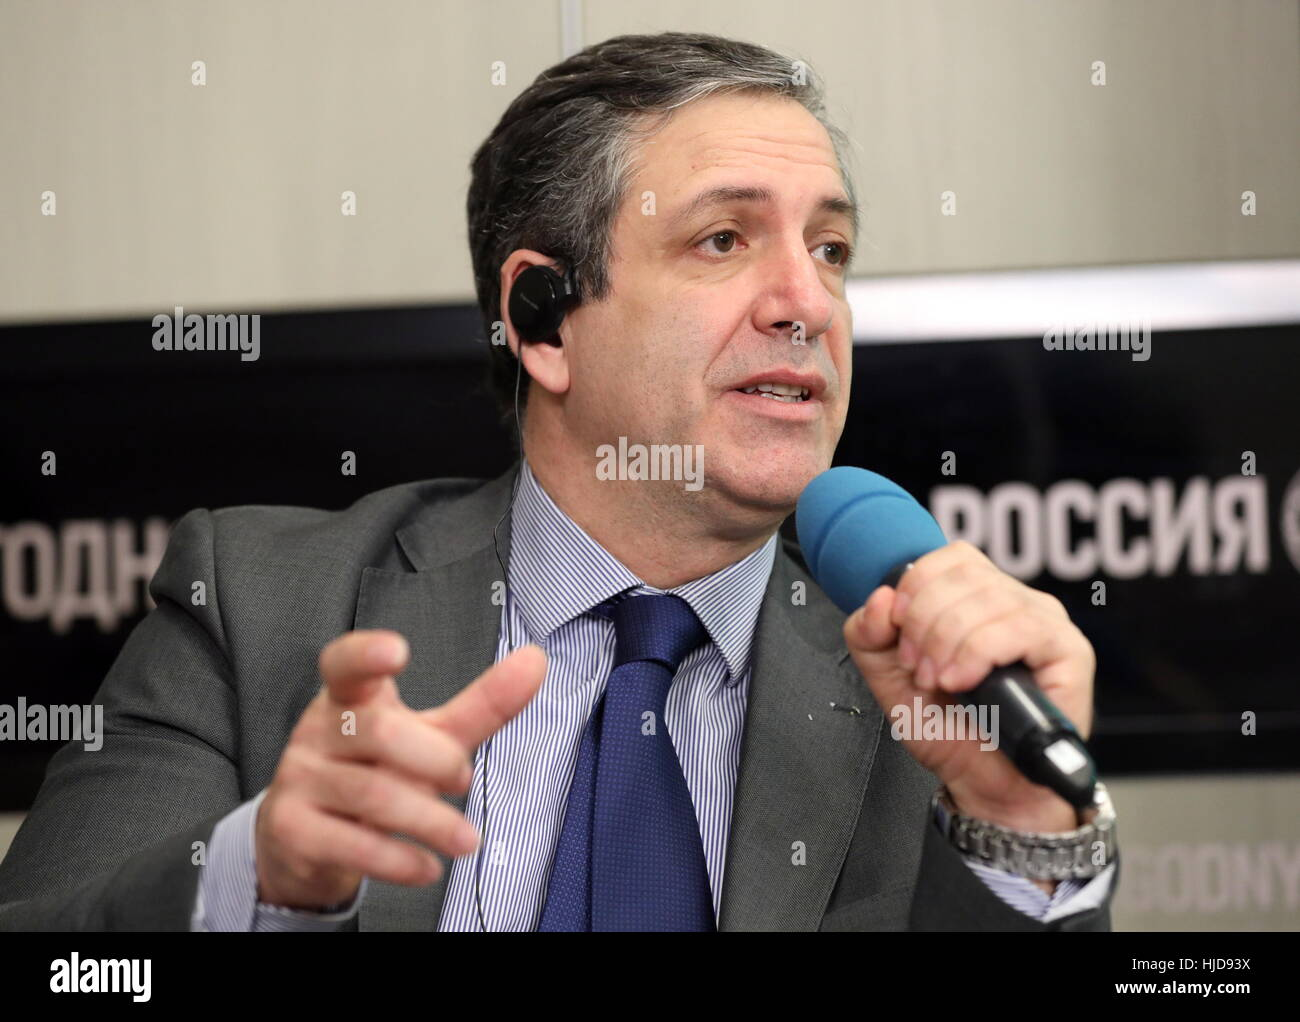 Moscow, Russia. 24th Jan, 2017. European Weightlifting Federation (EWF) President Antonio Urso speaks at a press Stock Photo